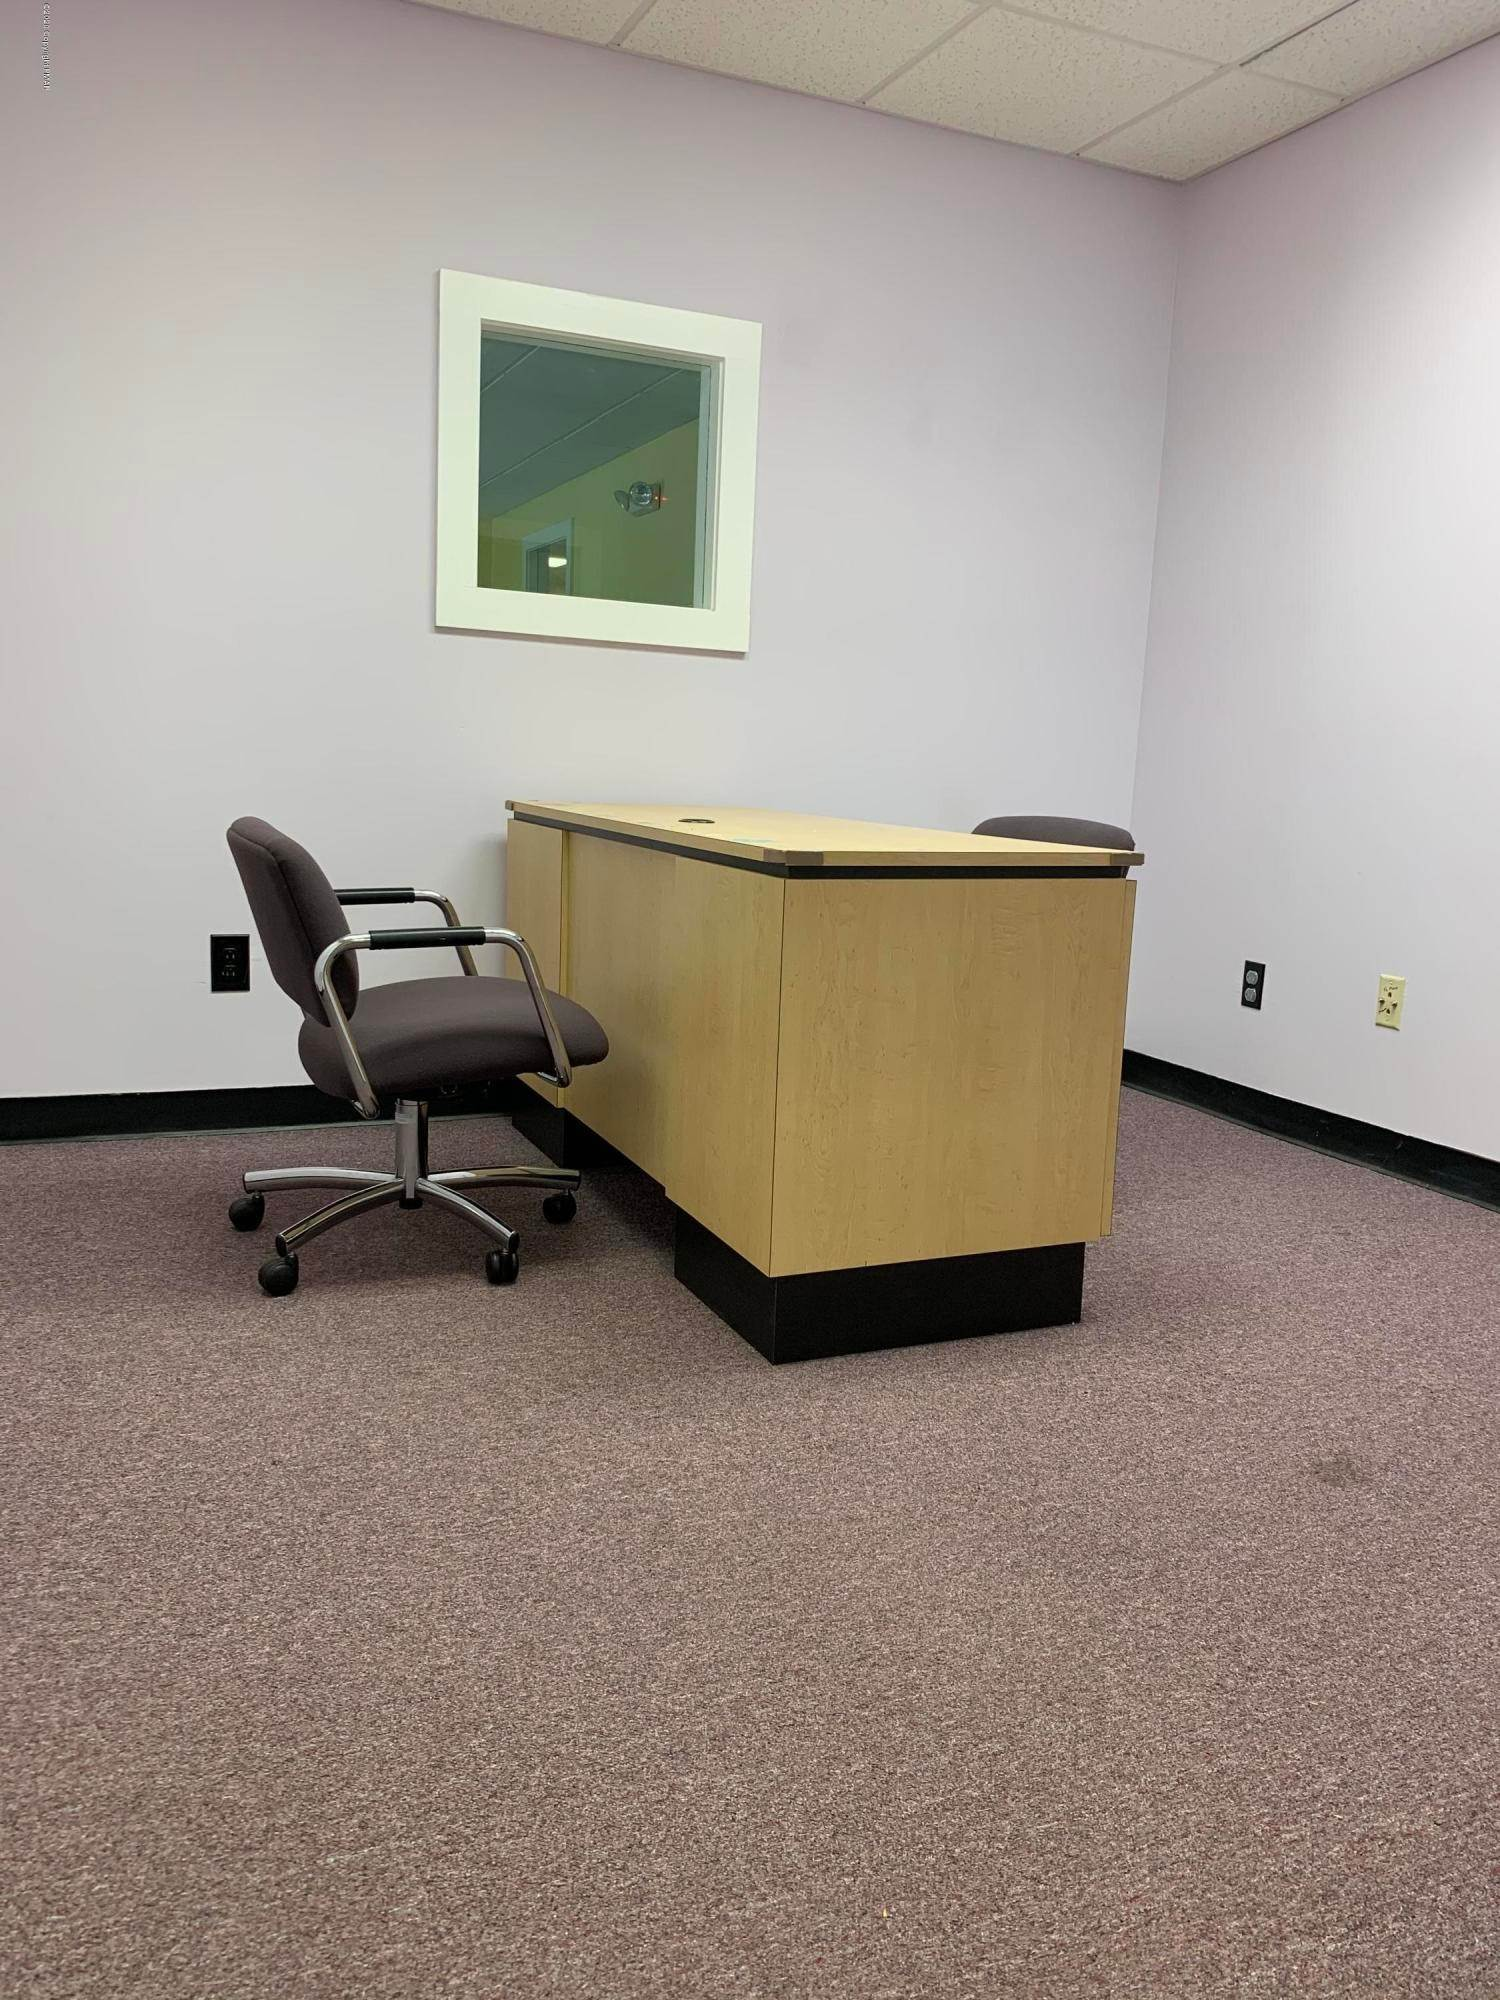 3. Commercial for Sale at 2936 Route 611, School Tannersville, Pennsylvania 18372 United States